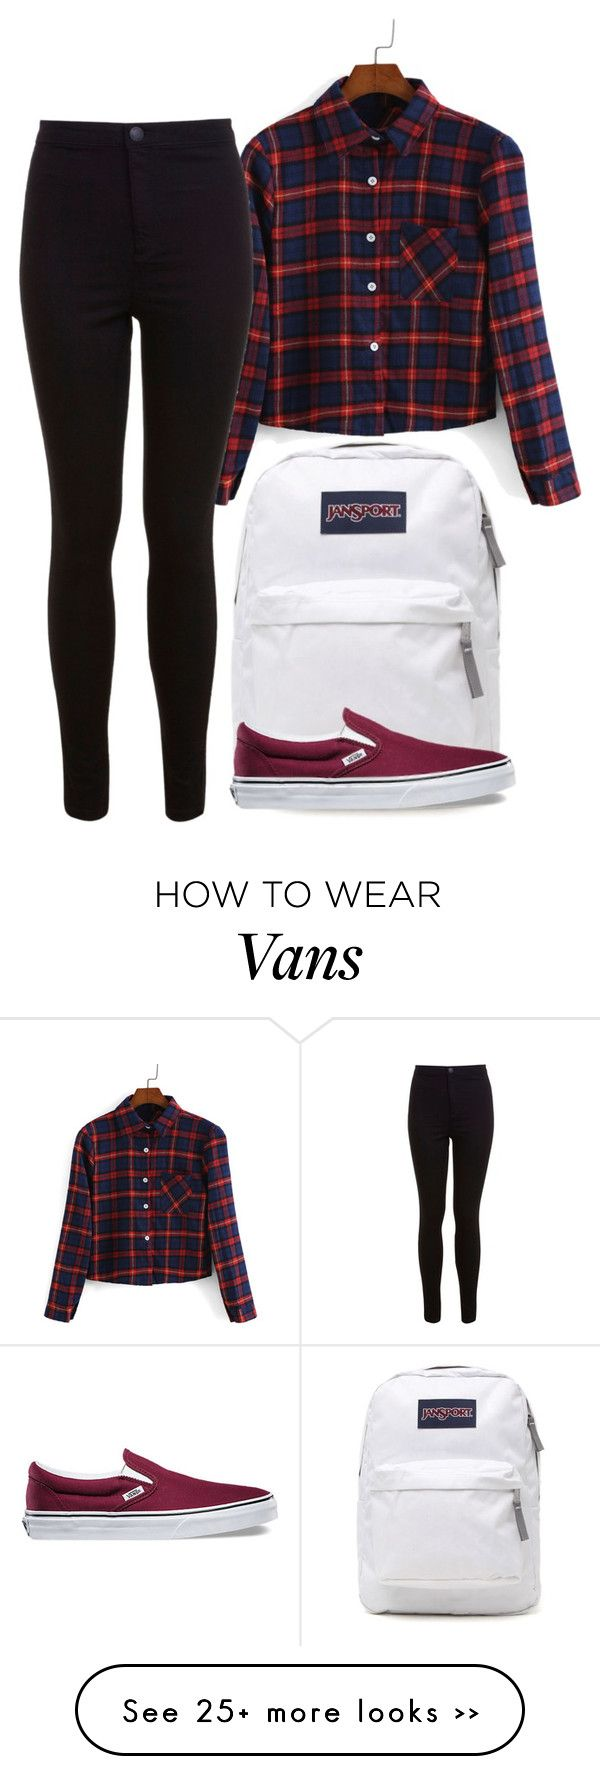 """Untitled #246"" by soleilgarnett on Polyvore featuring JanSport, Miss Selfridge and Vans"